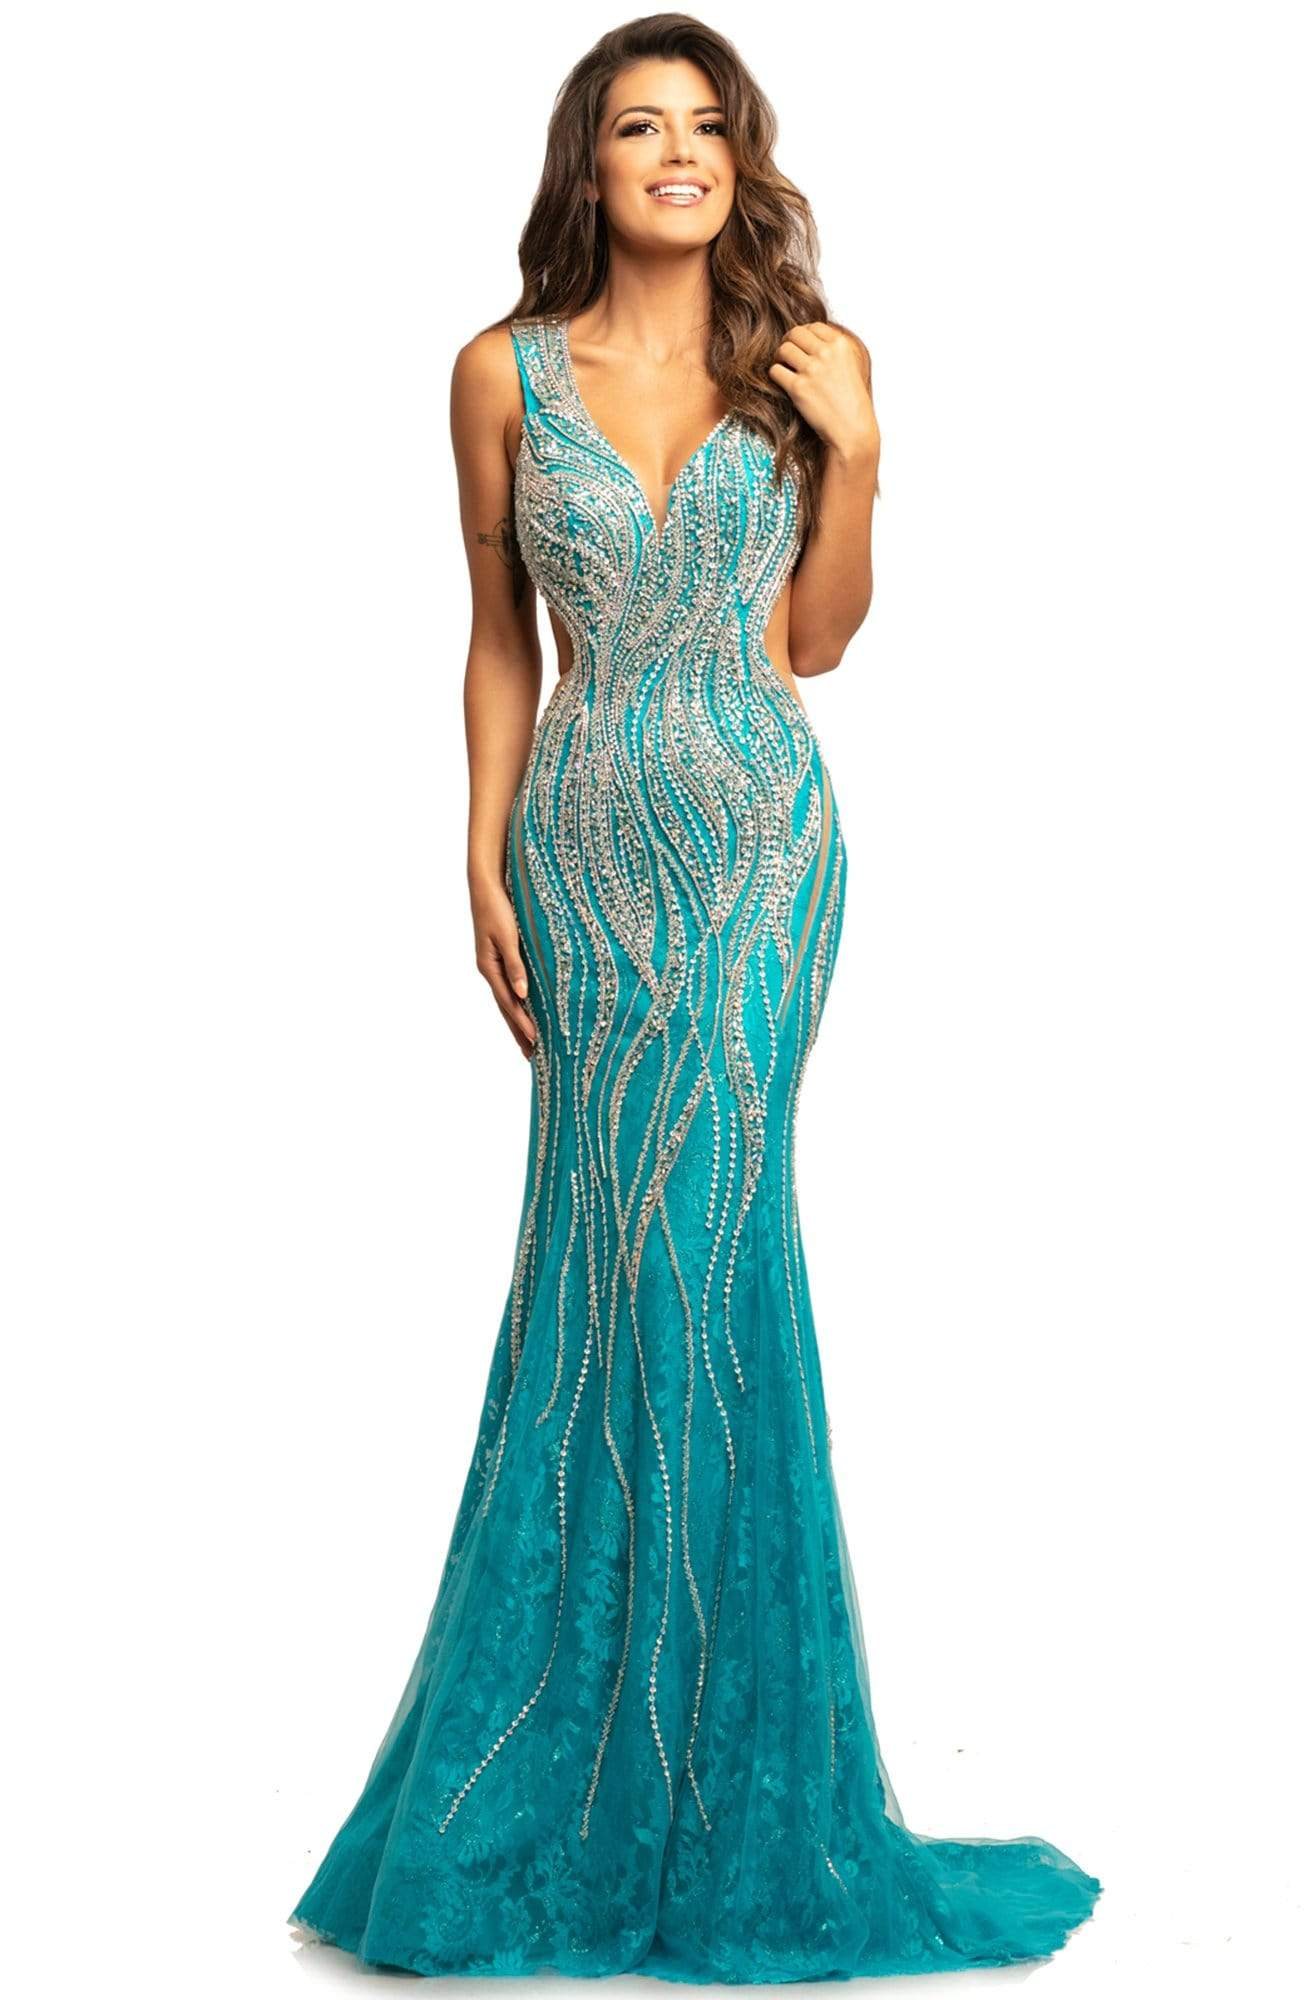 Johnathan Kayne - 2041 Bedazzled Plunging V-neck Trumpet Dress from Johnathan Kayne